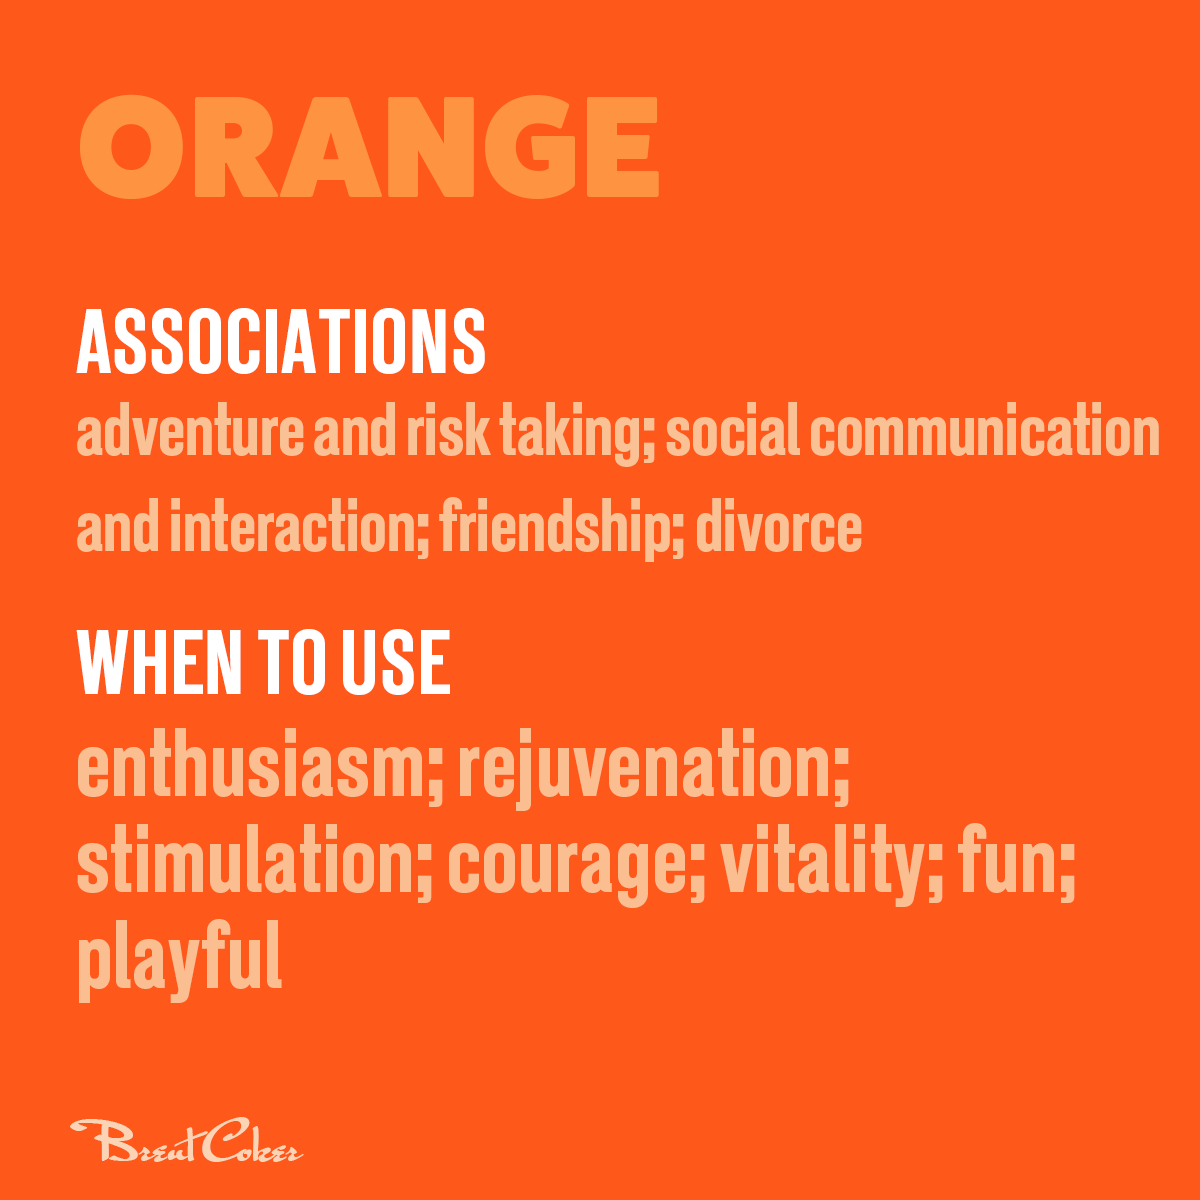 The psychology of colour in marketing Orange